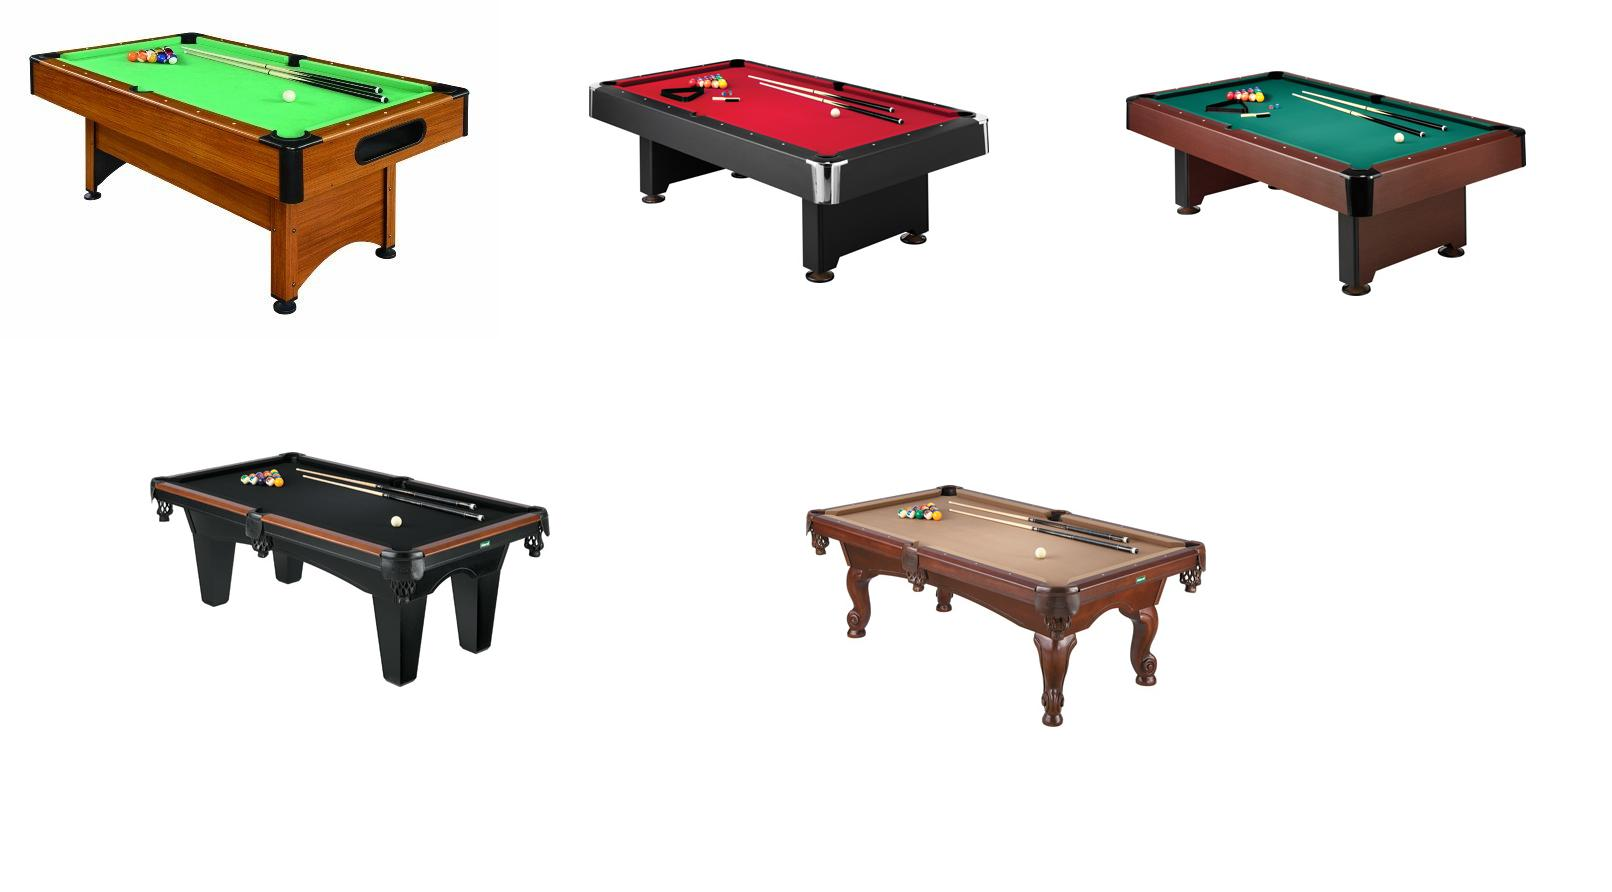 6.5 Ft Pool Table | Mizerak Pool Table | 6 Foot Pool Table for Sale